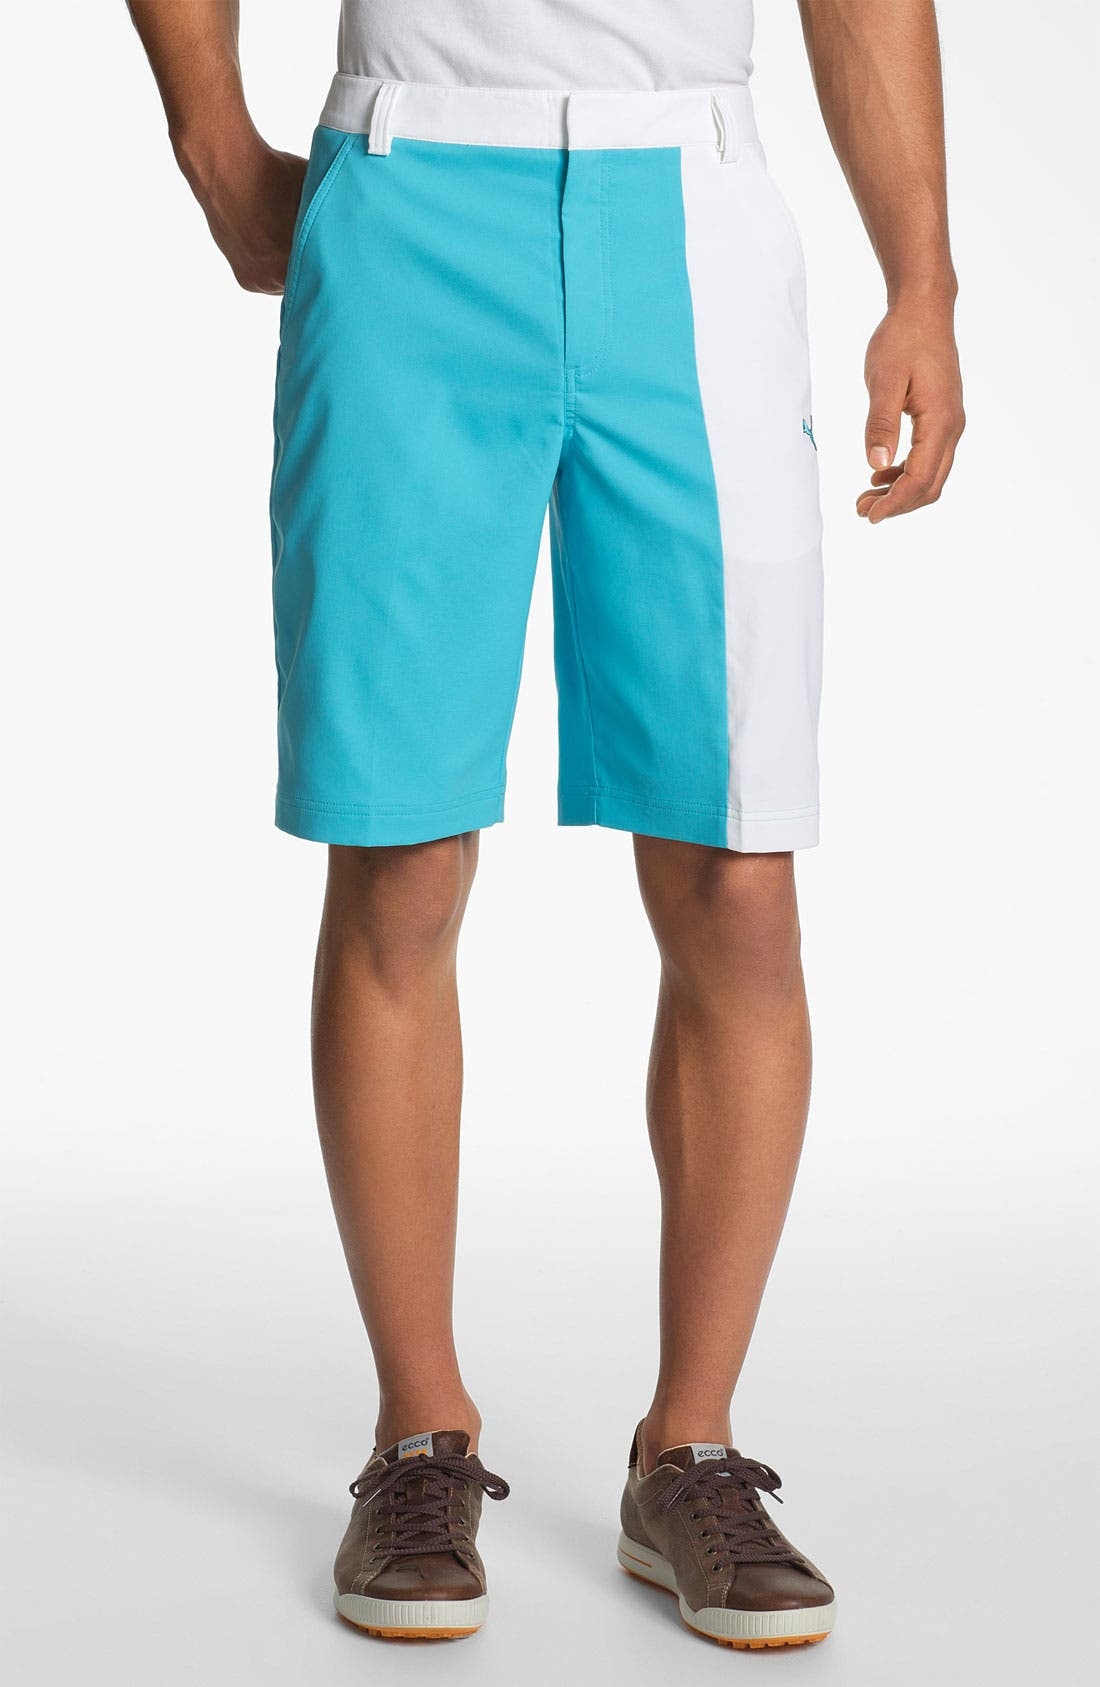 Alternate Image 1 Selected - PUMA GOLF 'New Wave' Golf Shorts